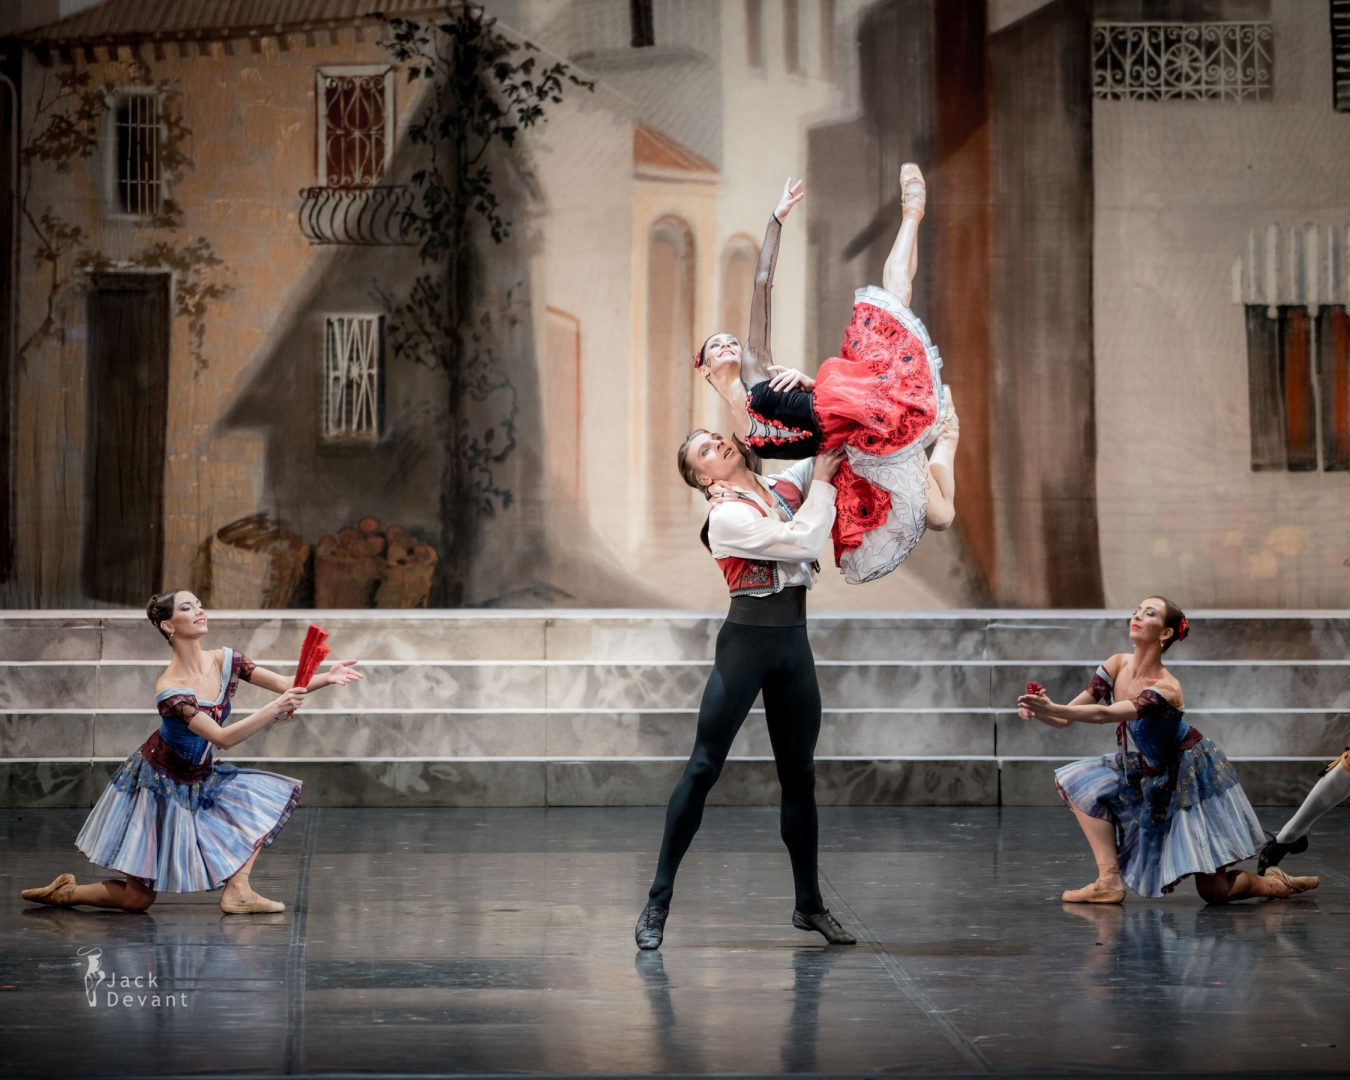 Oksana Kardash (Rus. Оксана Кардаш) as Kitri and Dmitry Sobolevsky (Rus. Дмитрий Соболевский) as Basil in Don Quixote ballet